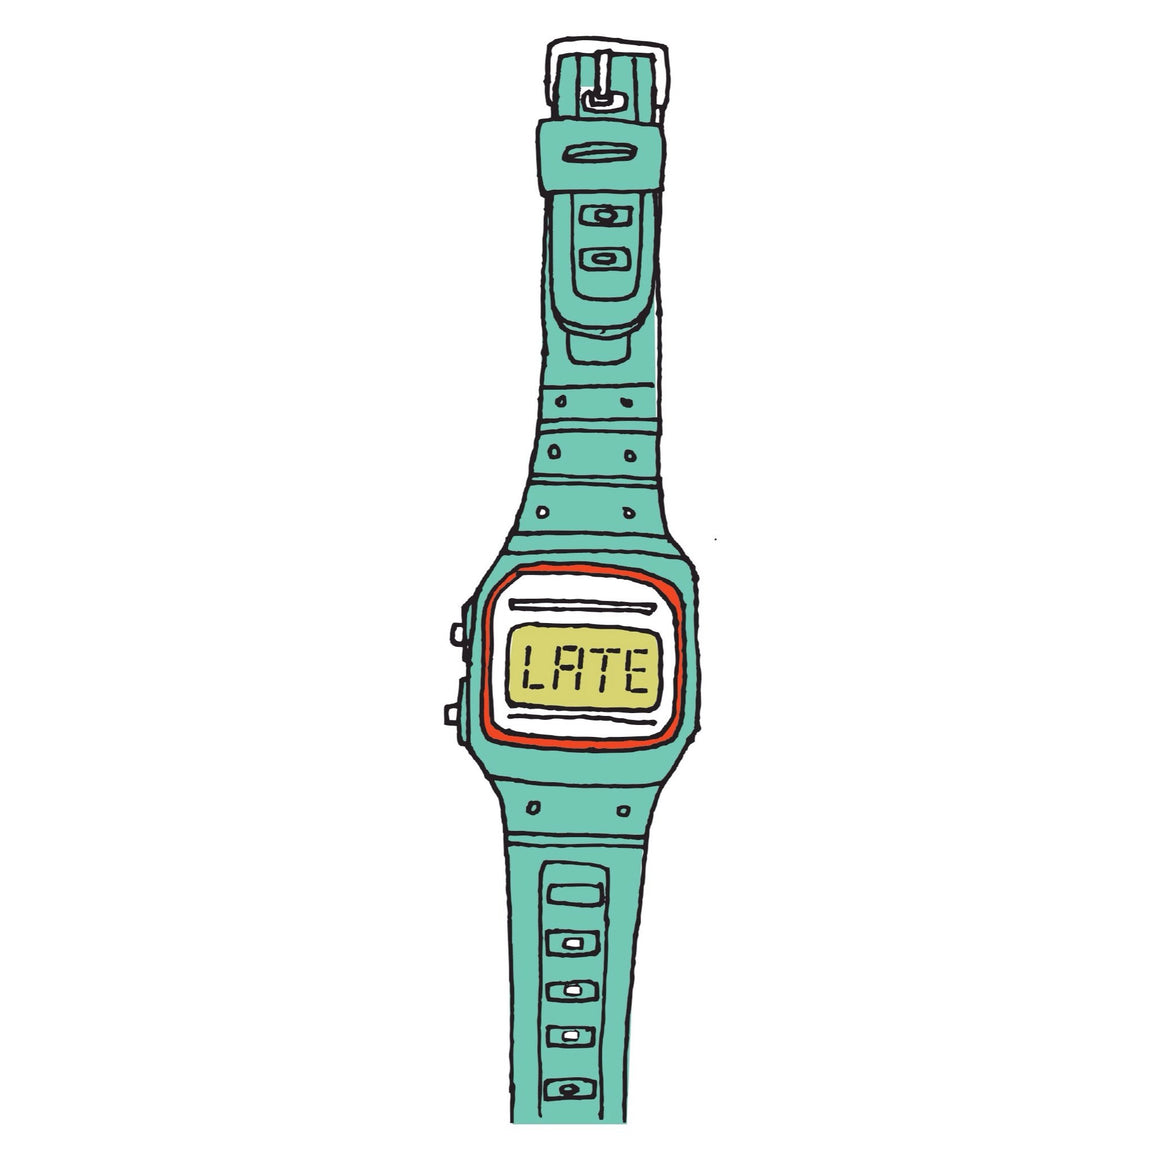 TATTOOS - TATTLY YOU'RE LATE WATCH TURQUOISE